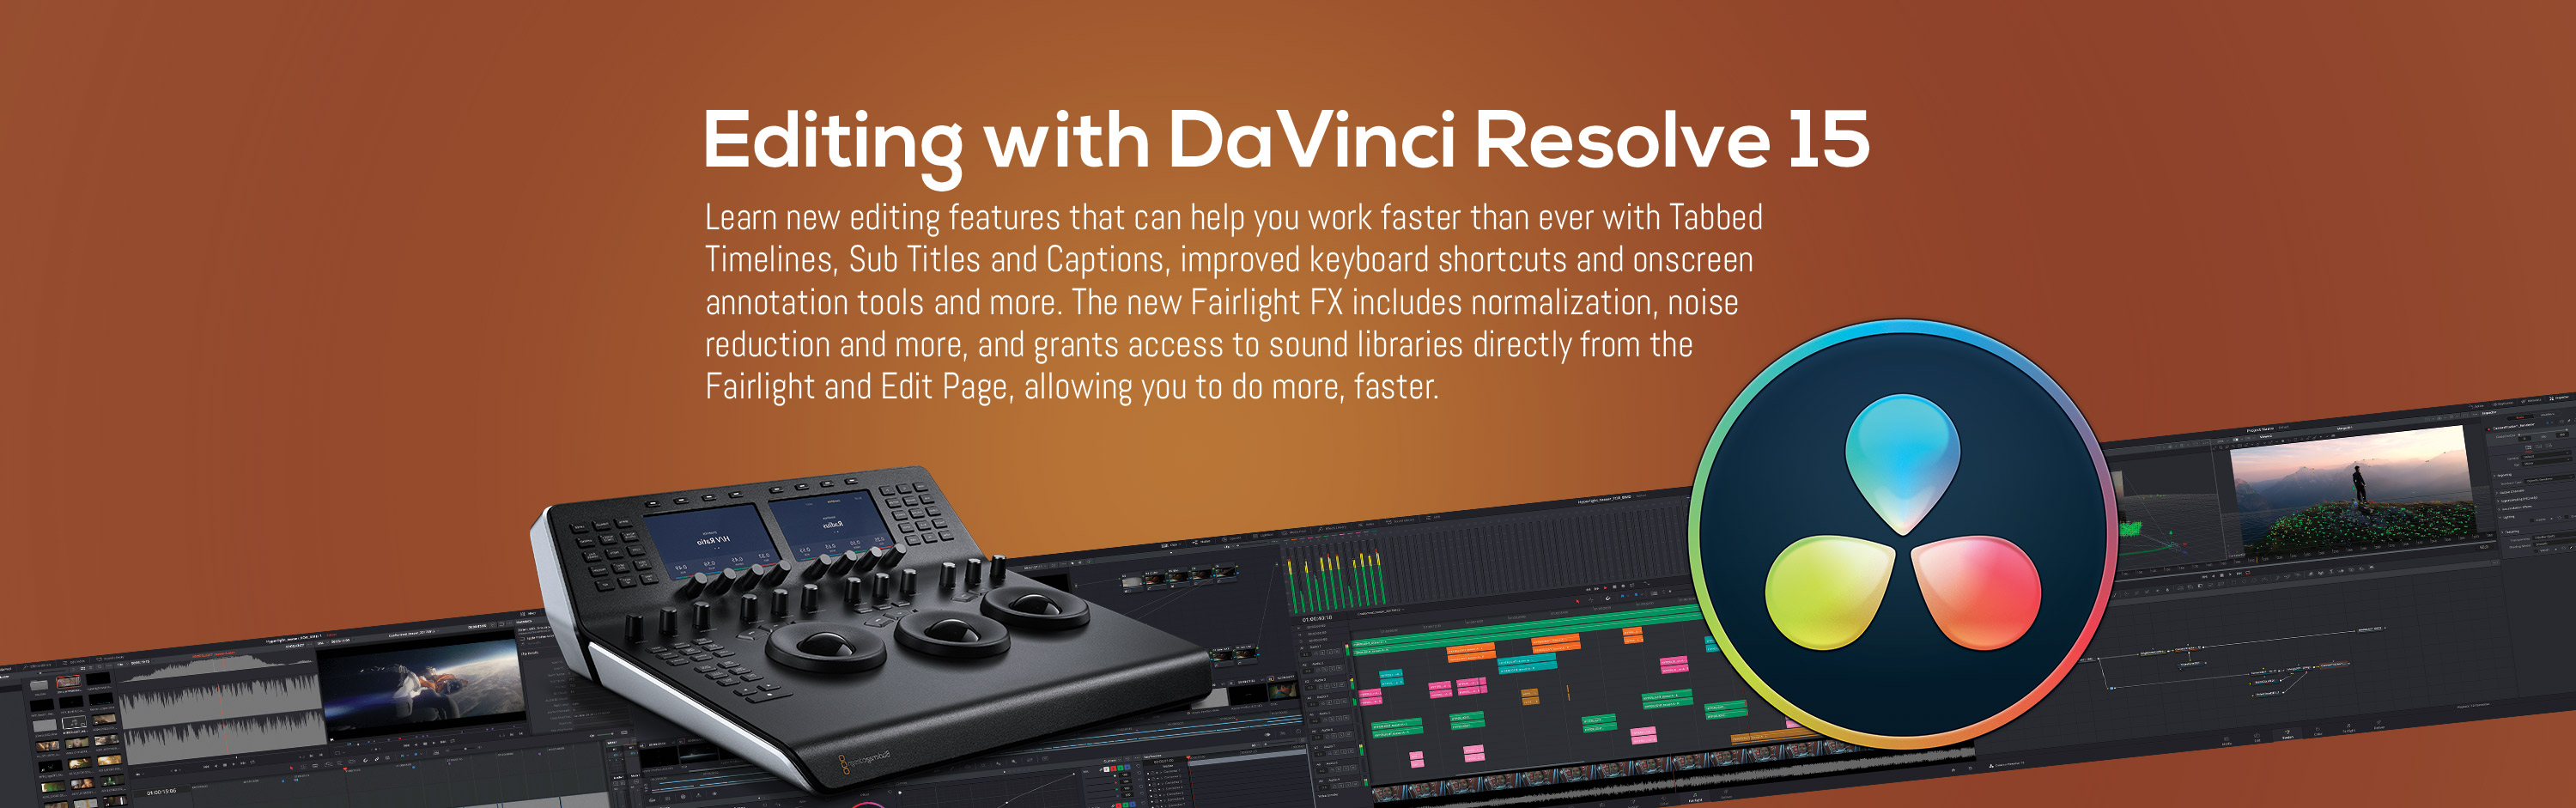 Editing with Davinci Resolve